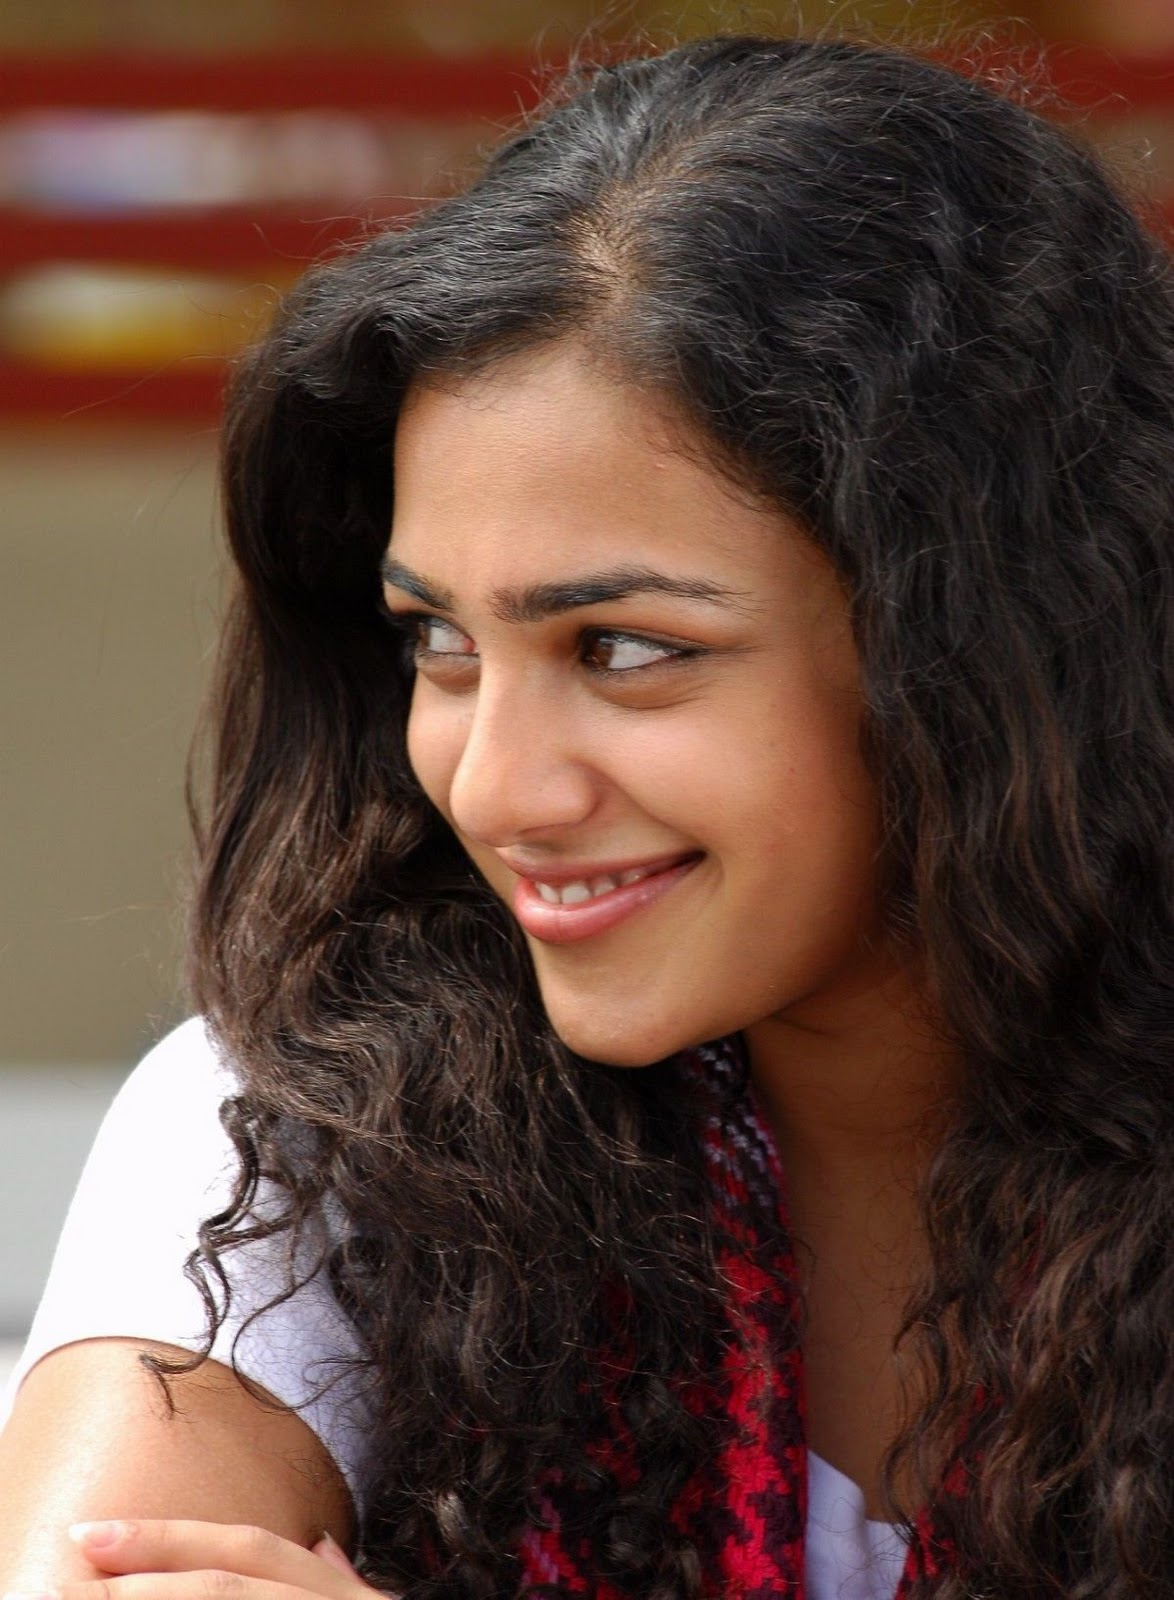 nithya menon latest movie stills cute photo gallery,wallpapers